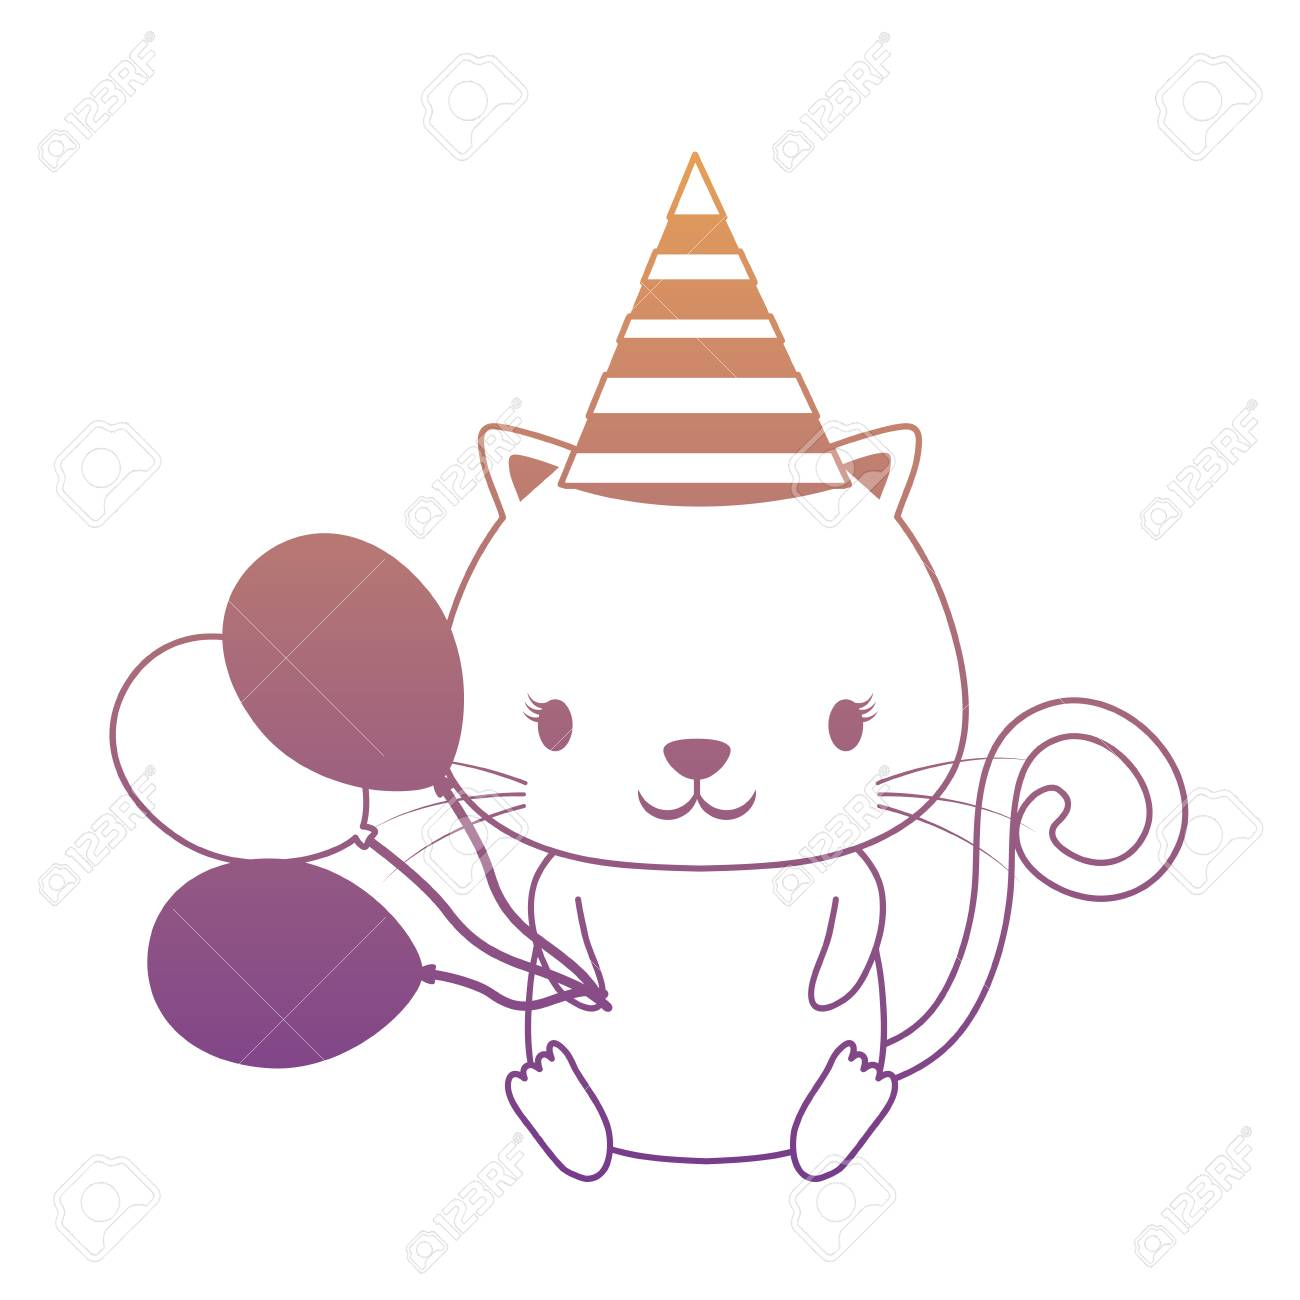 Happy Birthday Design With Cute Cat Hat And Balloons Over White Background Colorful